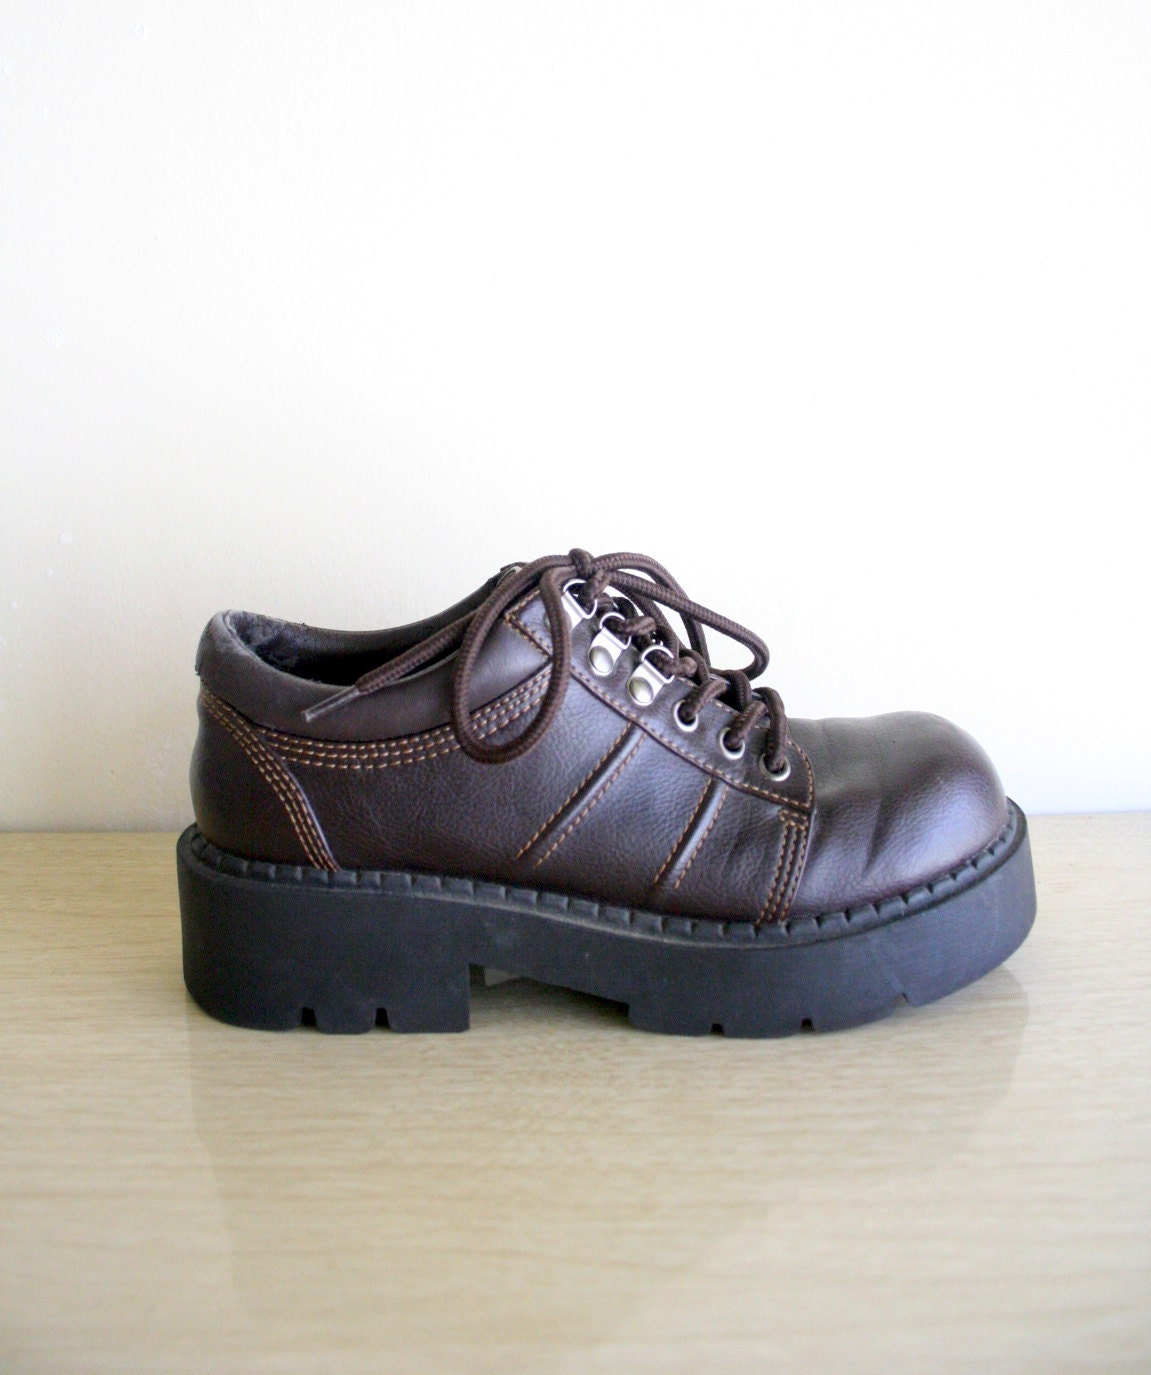 90s platform shoes doc marten style chunky by downhousevintage